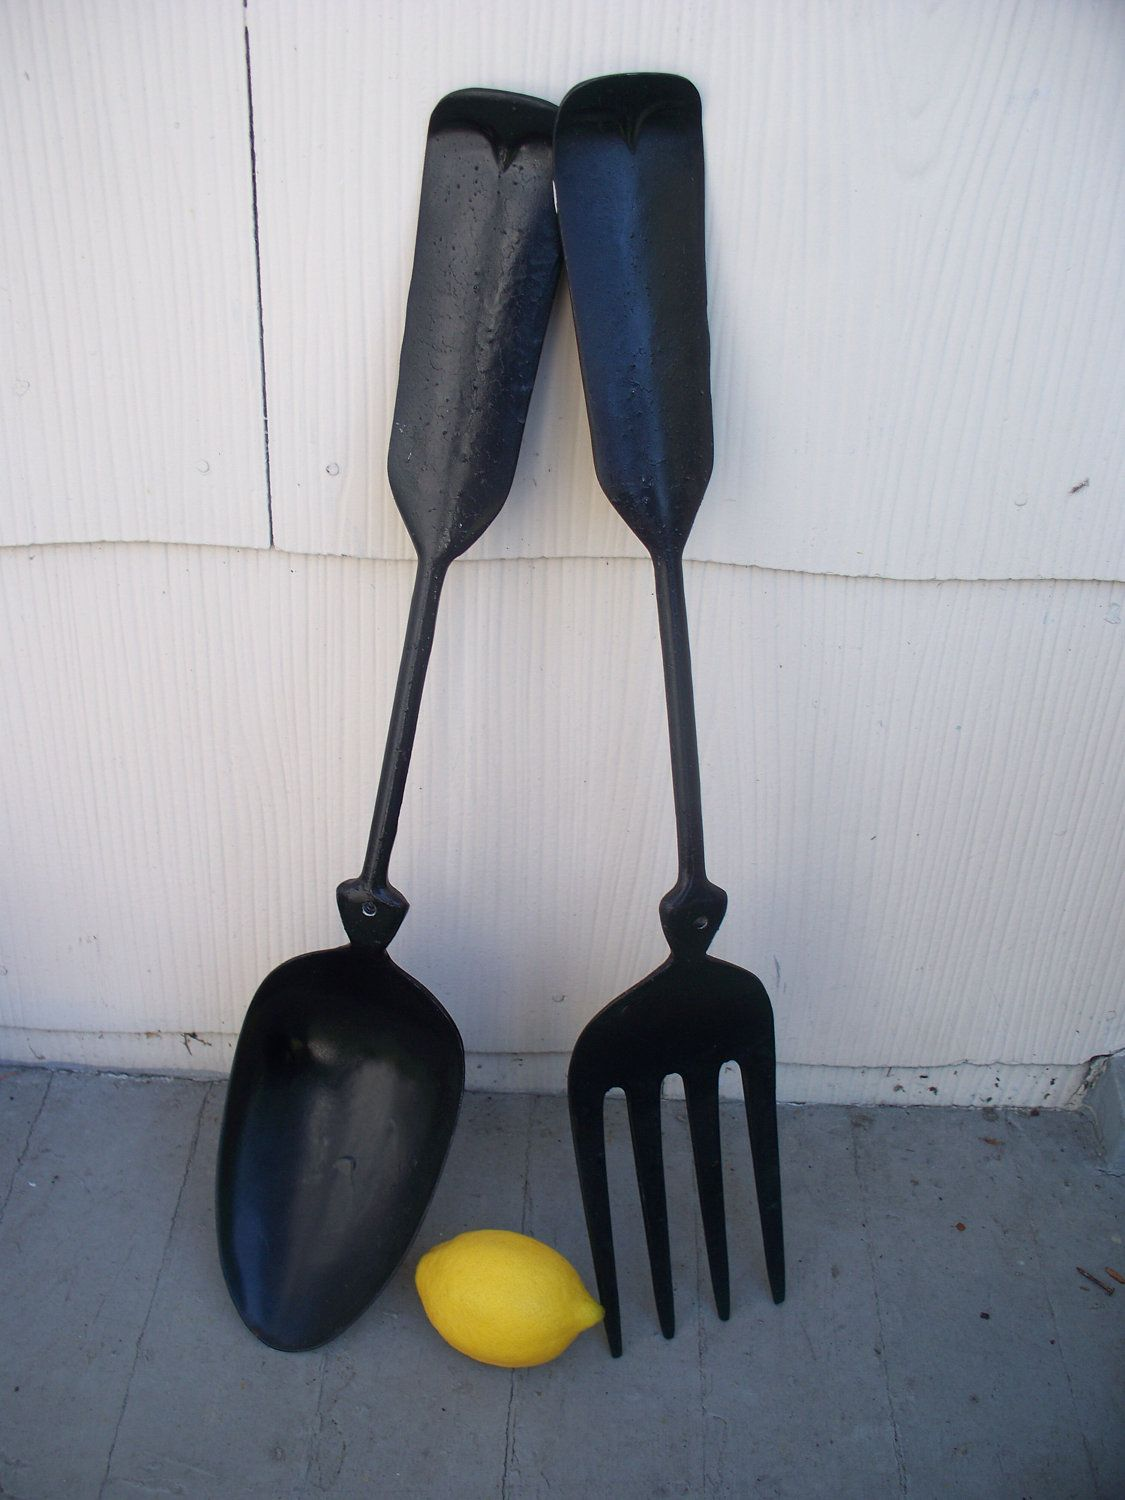 Vintage Large Metal Spoon And Fork Wall Decor 20 00 Via Etsy